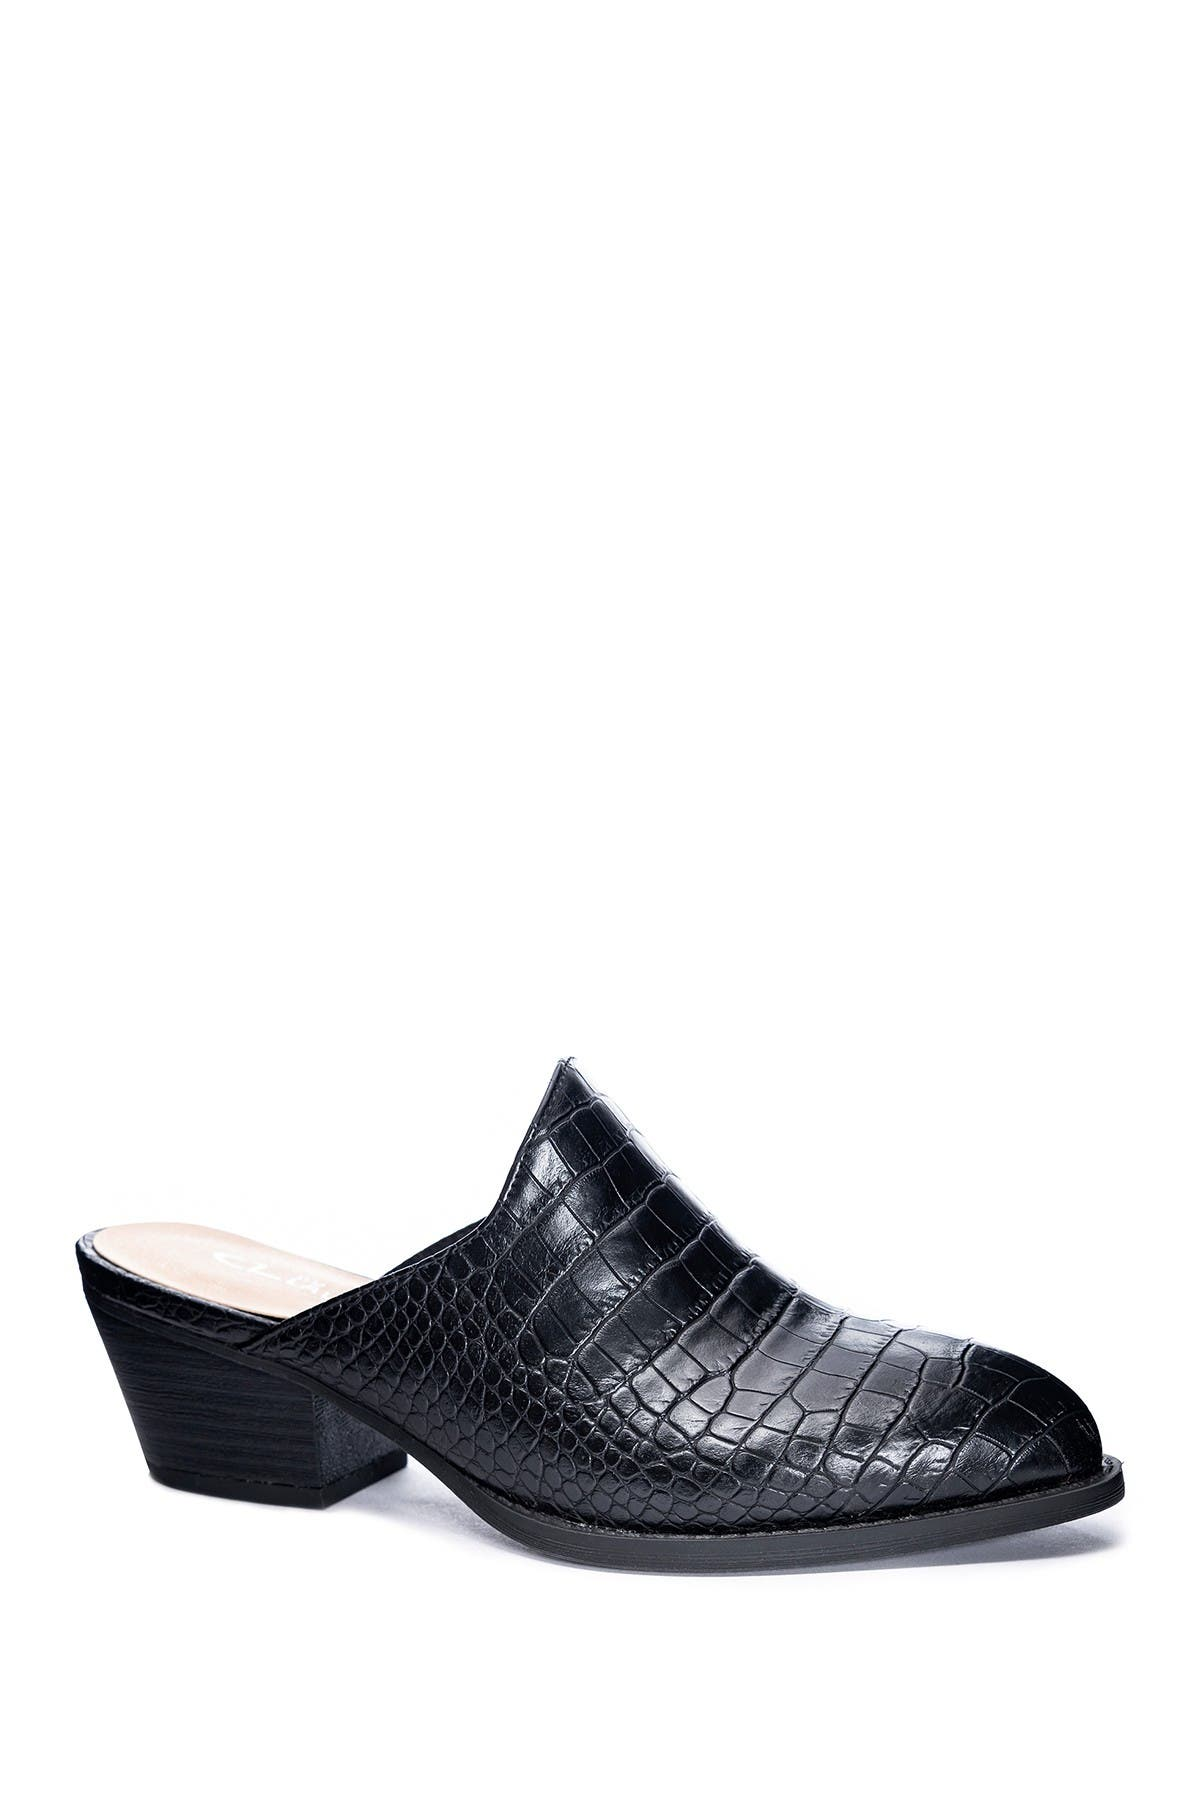 Image of CL by Laundry Catherin Croc Embossed Mule